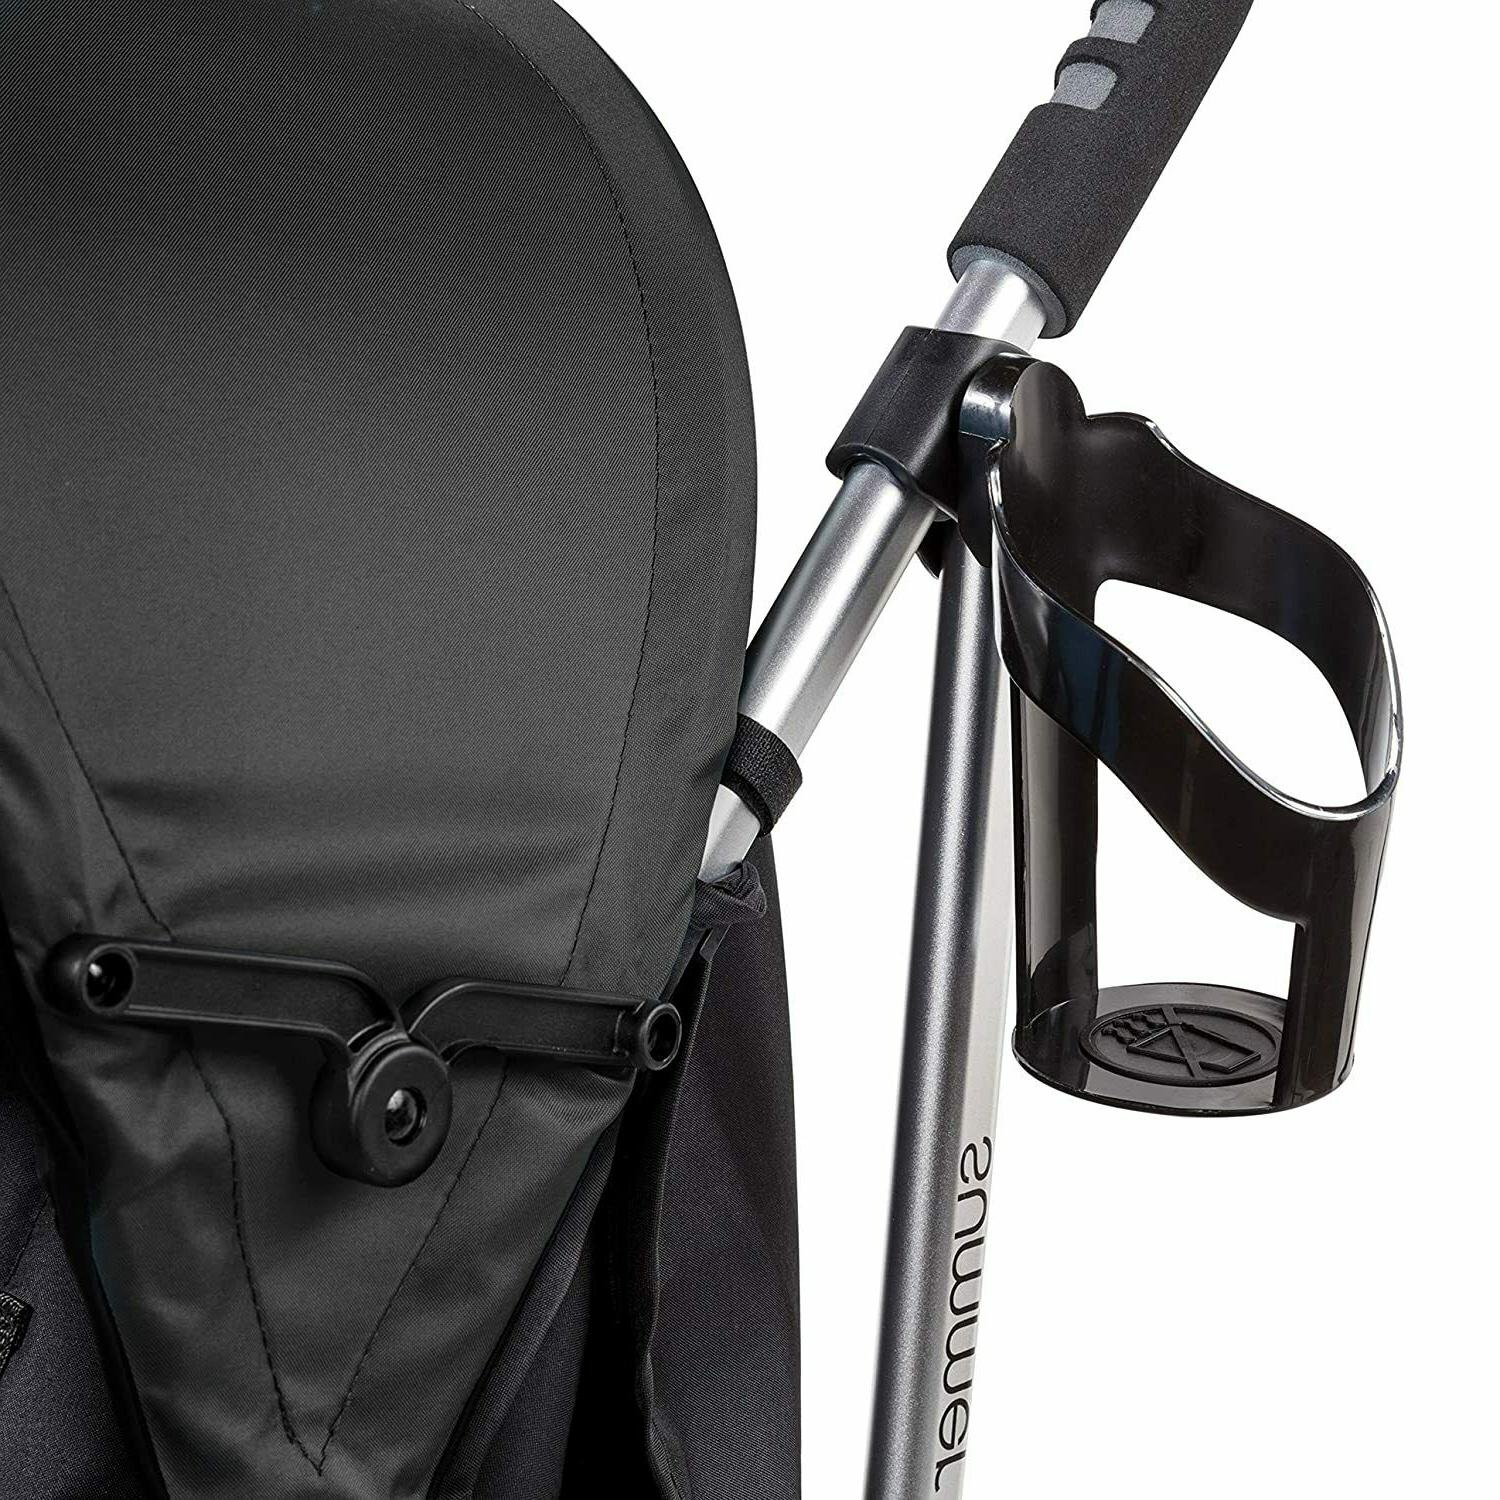 Convenience Baby Stroller Frame compact